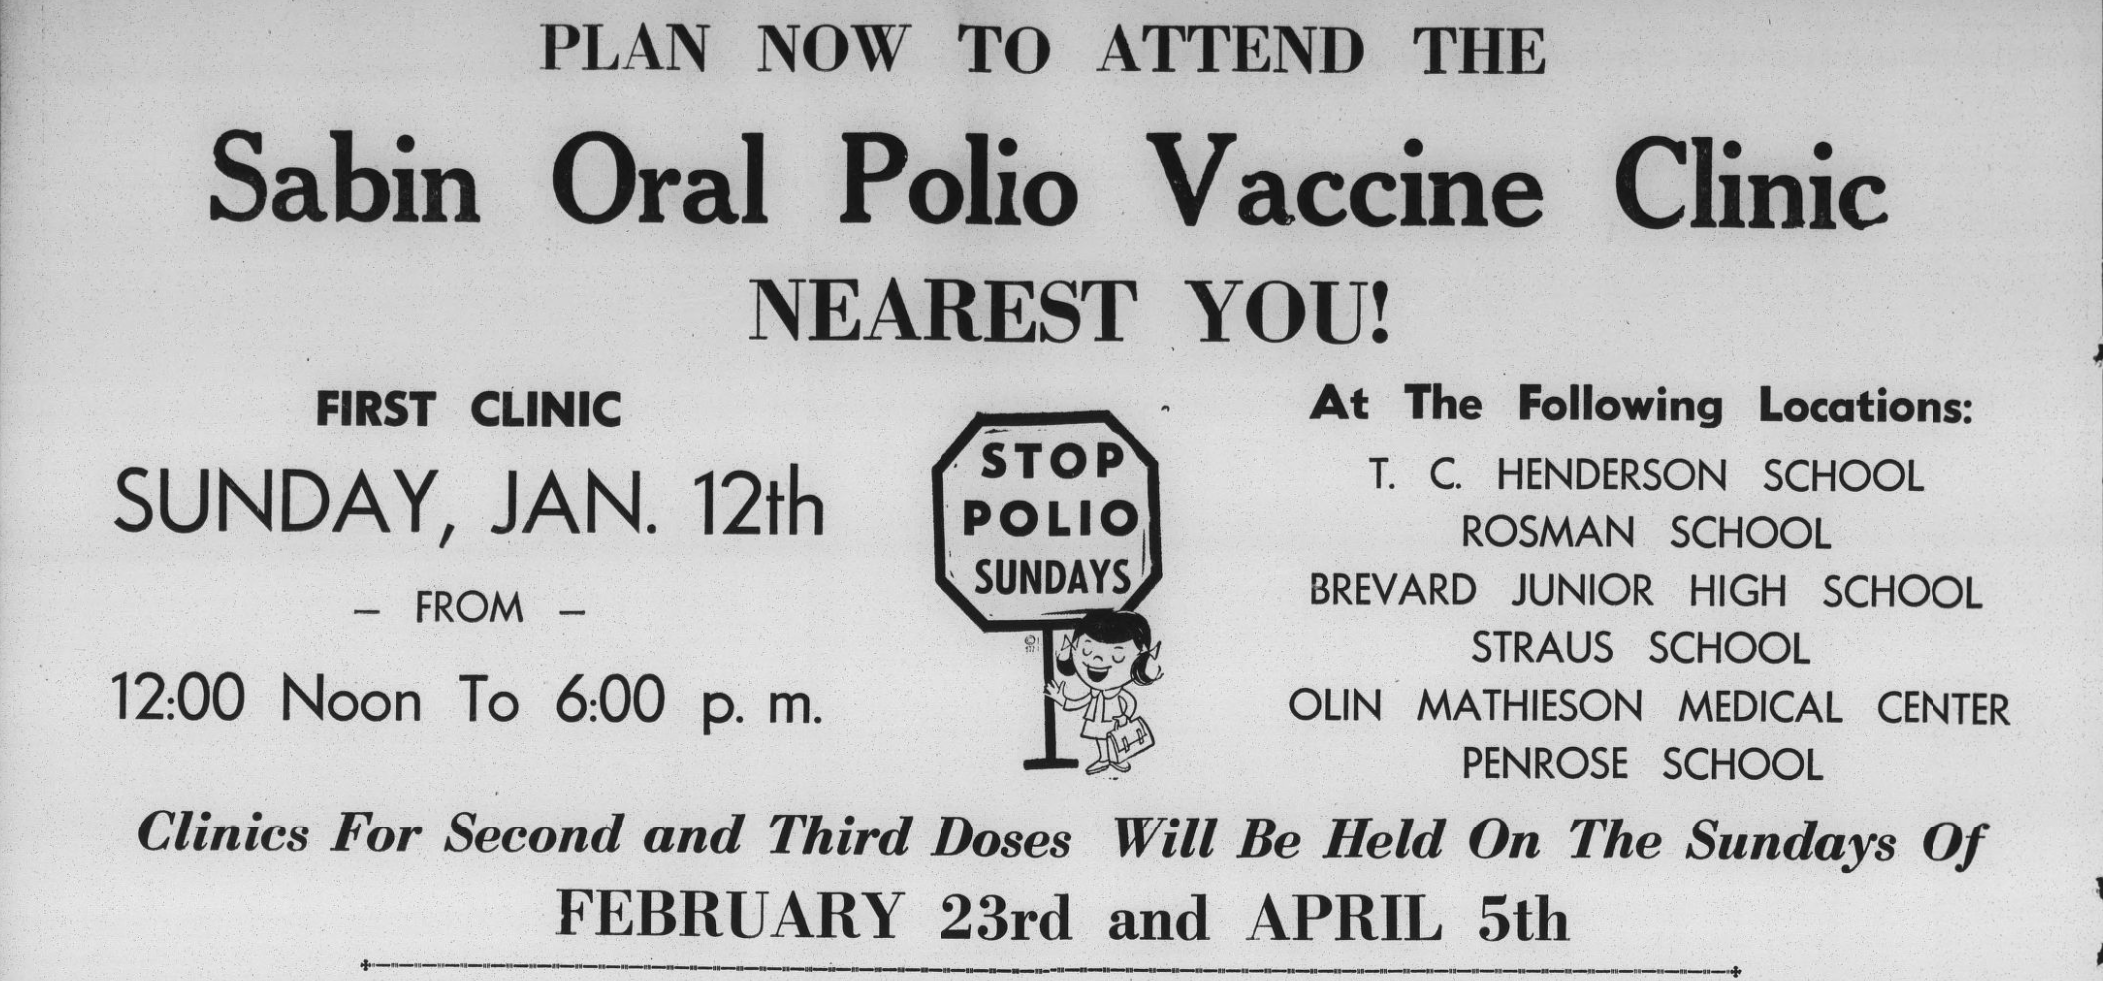 Advertisement for a Sabin oral polio vaccine clinic in Brevard on January 12, 1964.